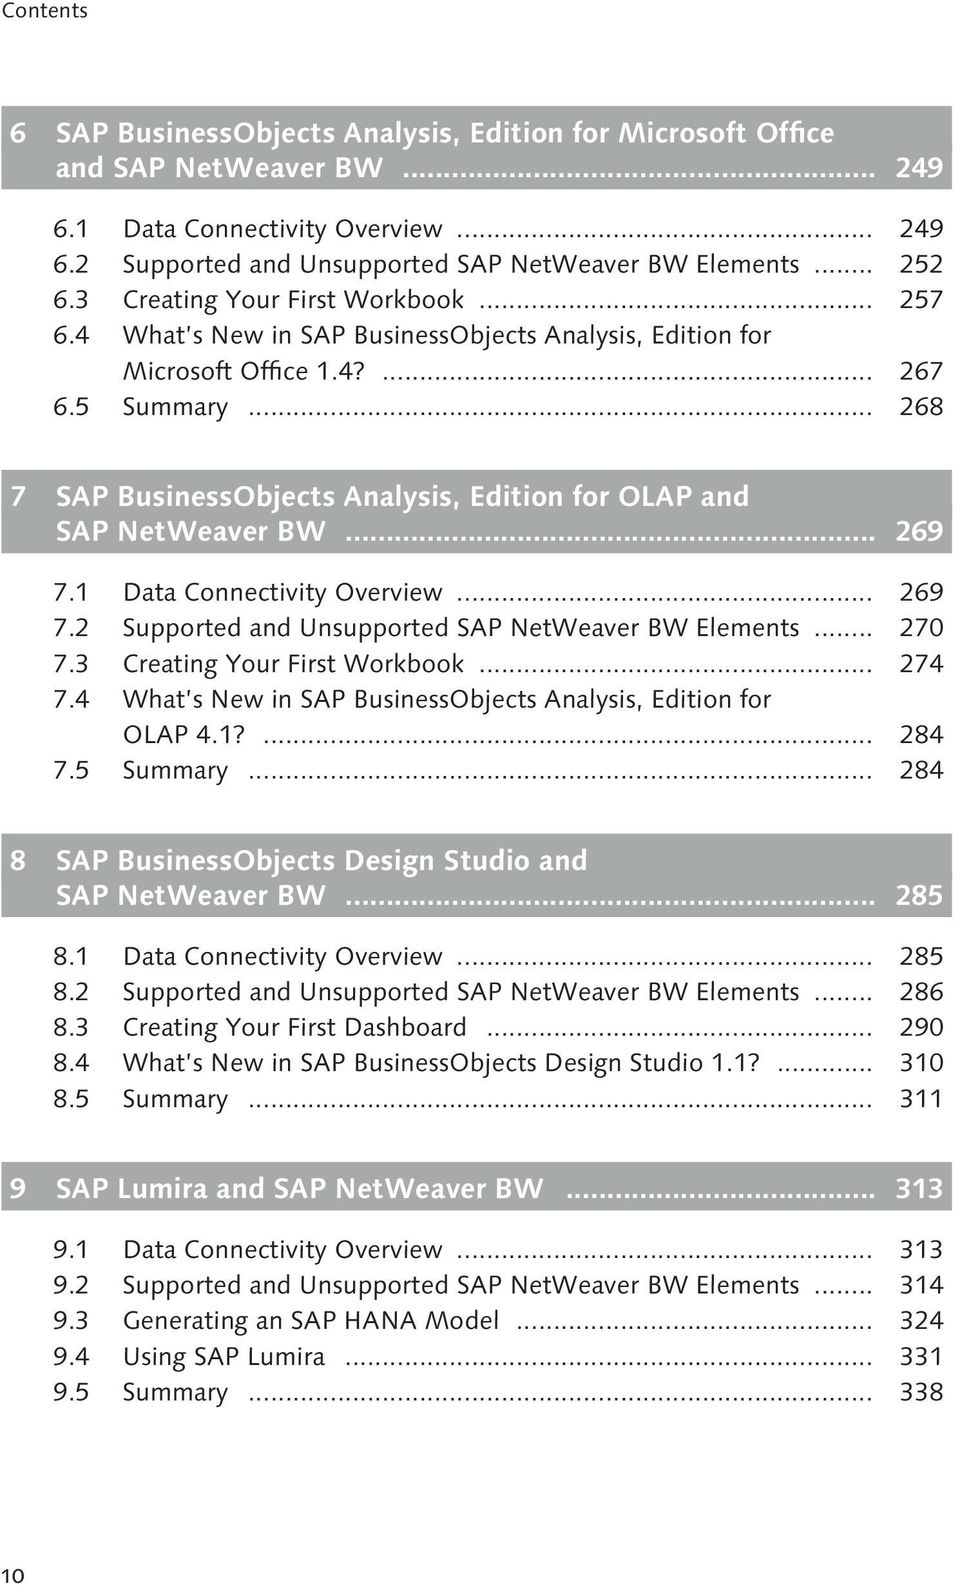 1 Data Connectivity Overview... 269 7.2 Supported and Unsupported SAP NetWeaver BW Elements... 270 7.3 Creating Your First Workbook... 274 7.4 What s New in SAP Business Objects OLAP 4.1?... 284 7.